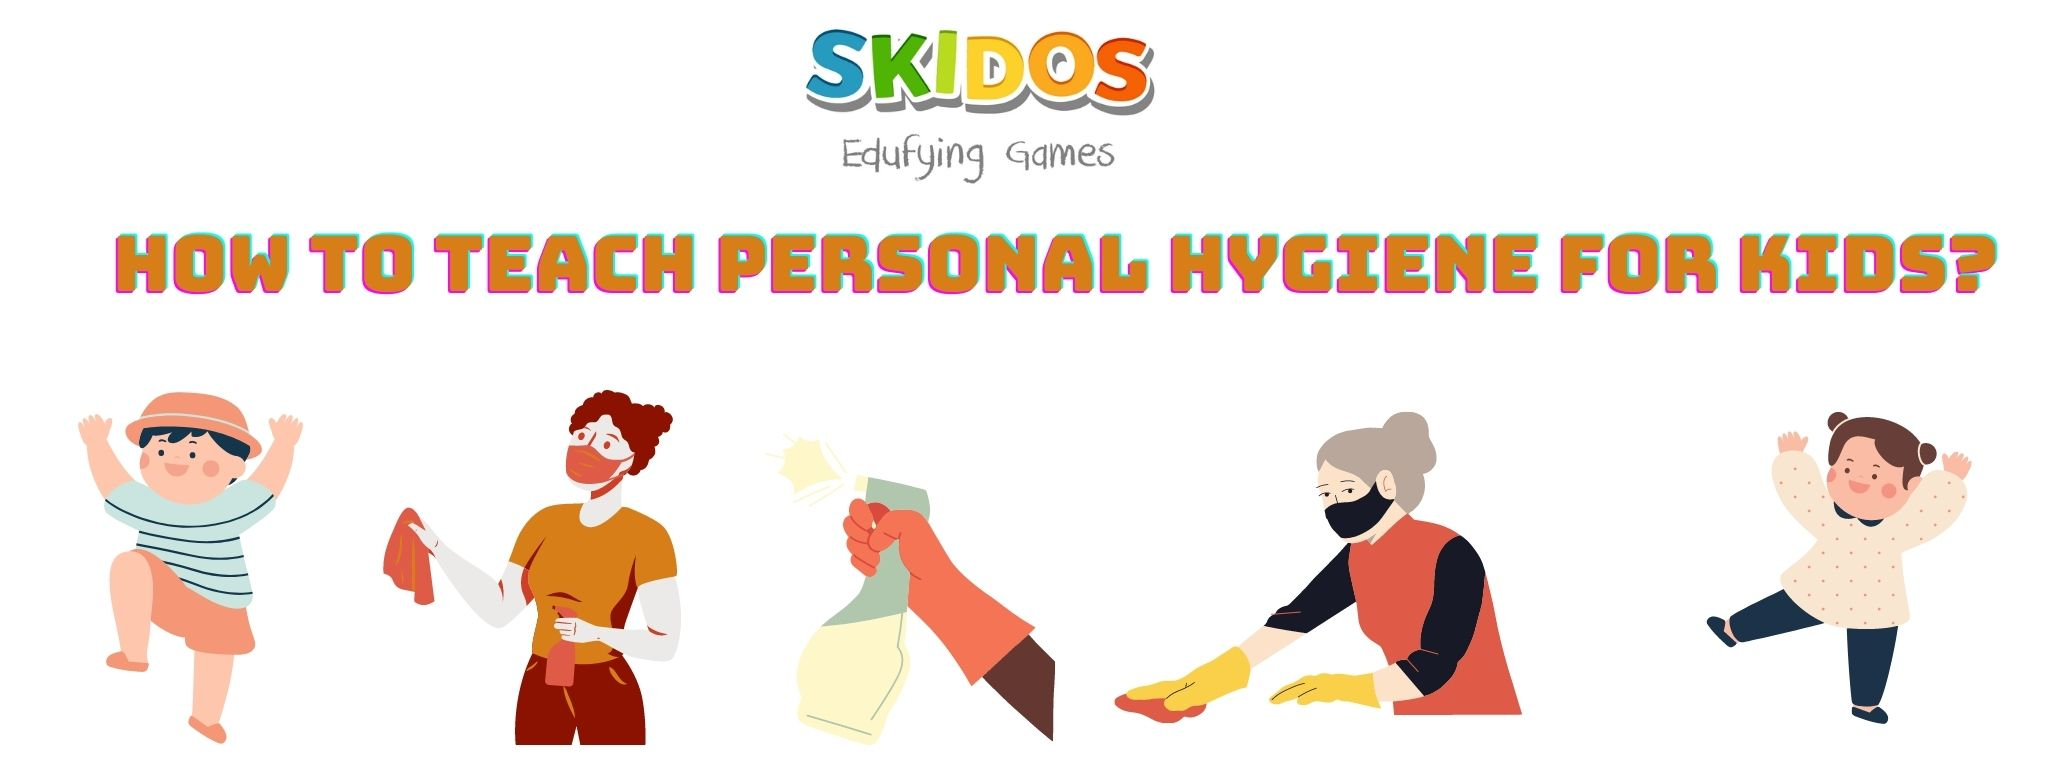 Personal Hygiene For Kids: How to Teach Effectively?